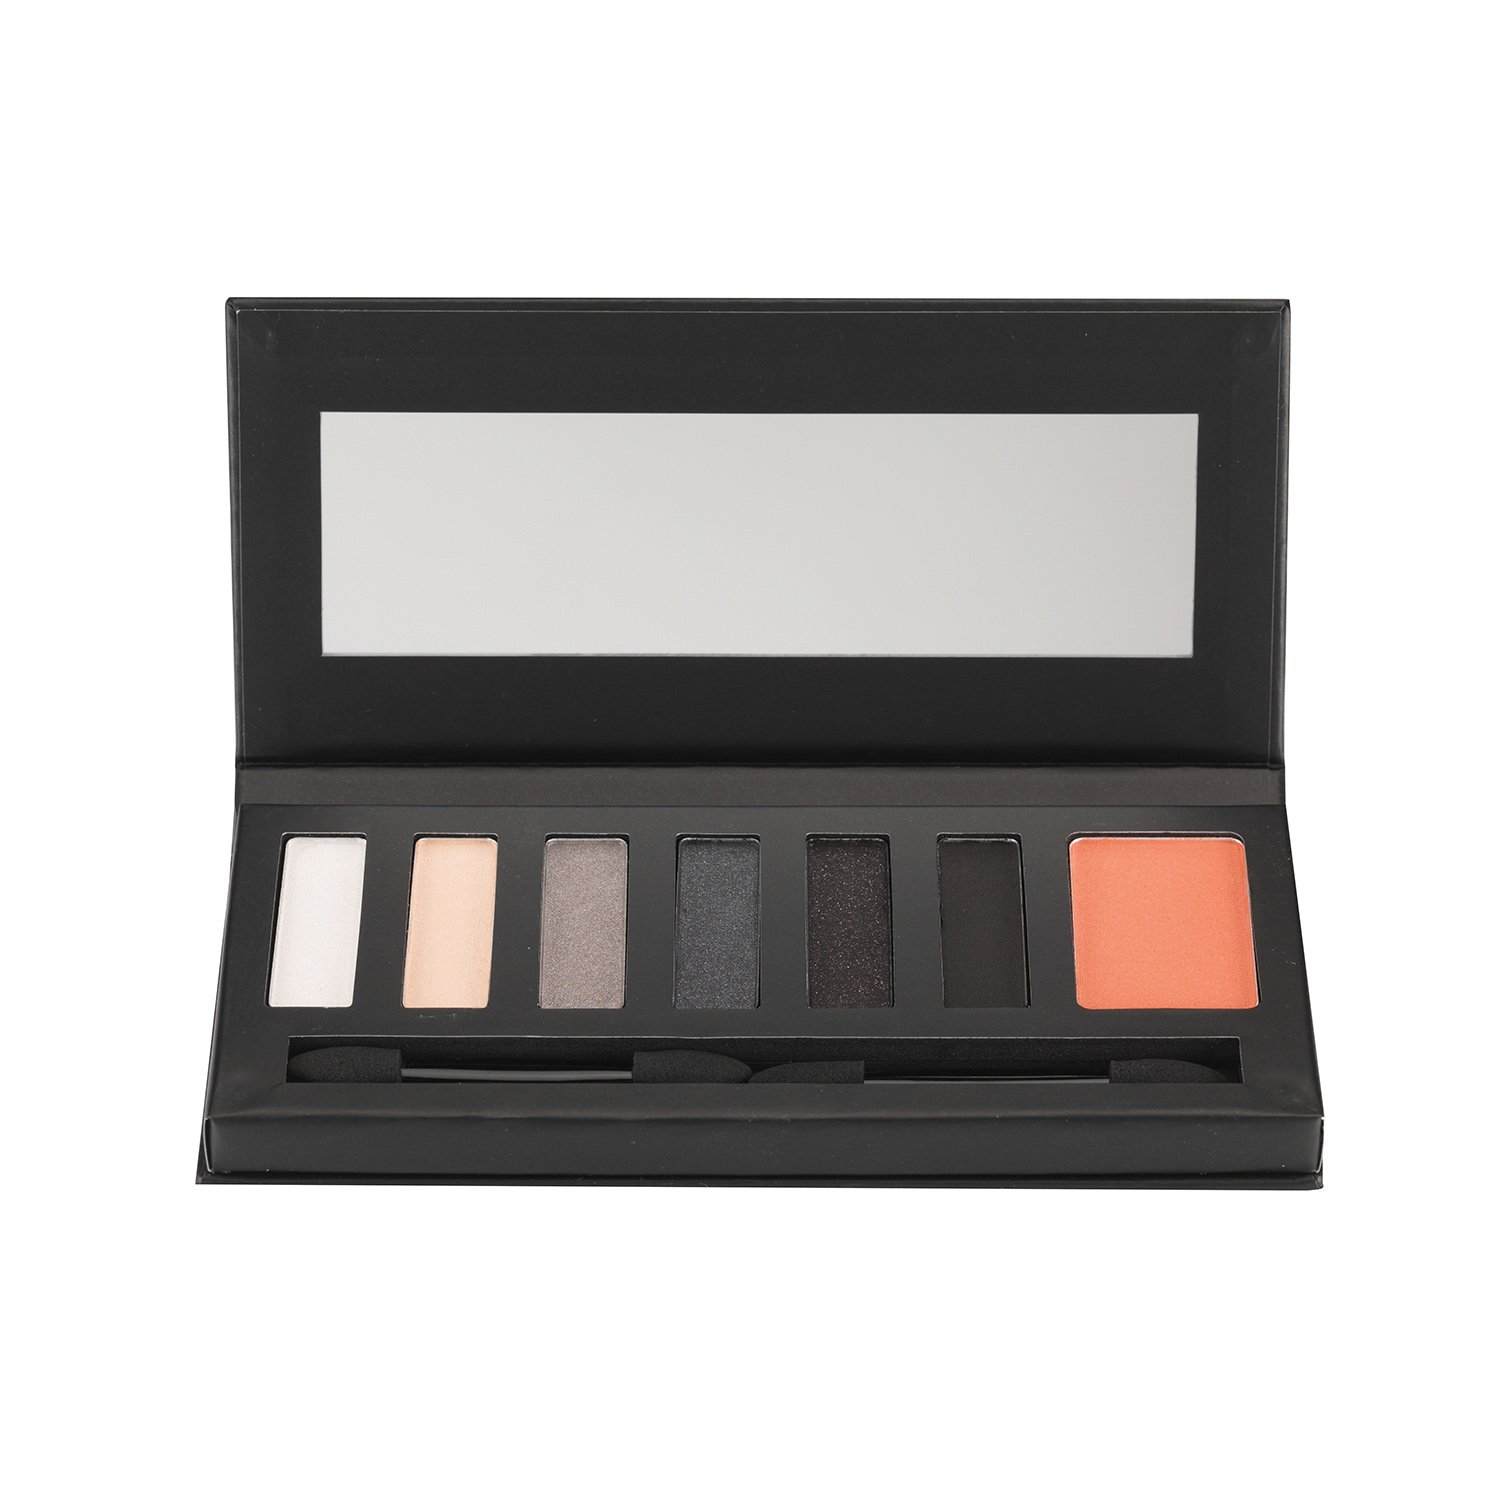 Barry M Cosmetics Eyeshadow Palette, Smokin Hot BMBE4 ESBP2